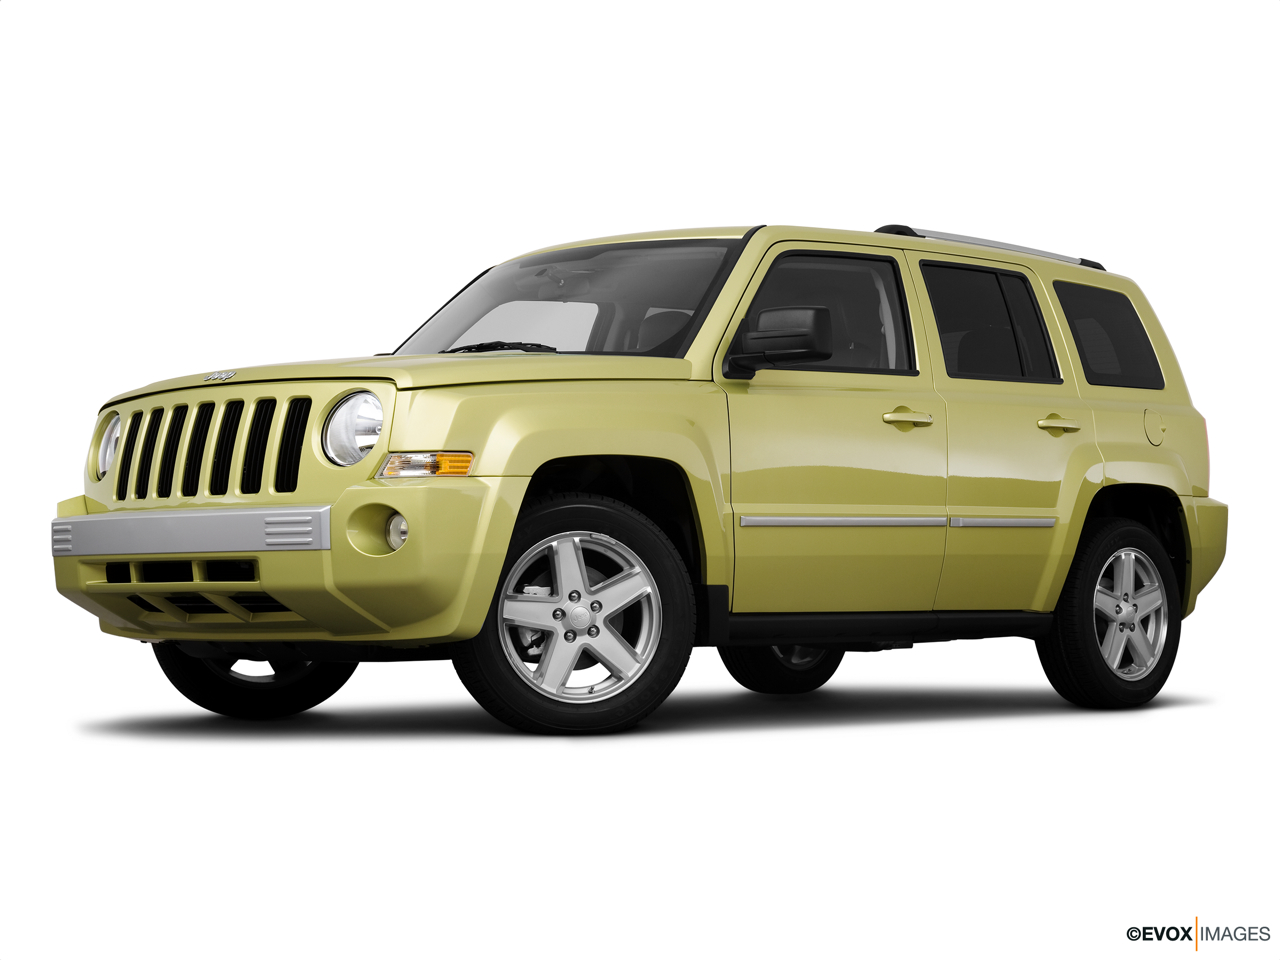 2010 Jeep Patriot Limited Low/wide front 5/8.